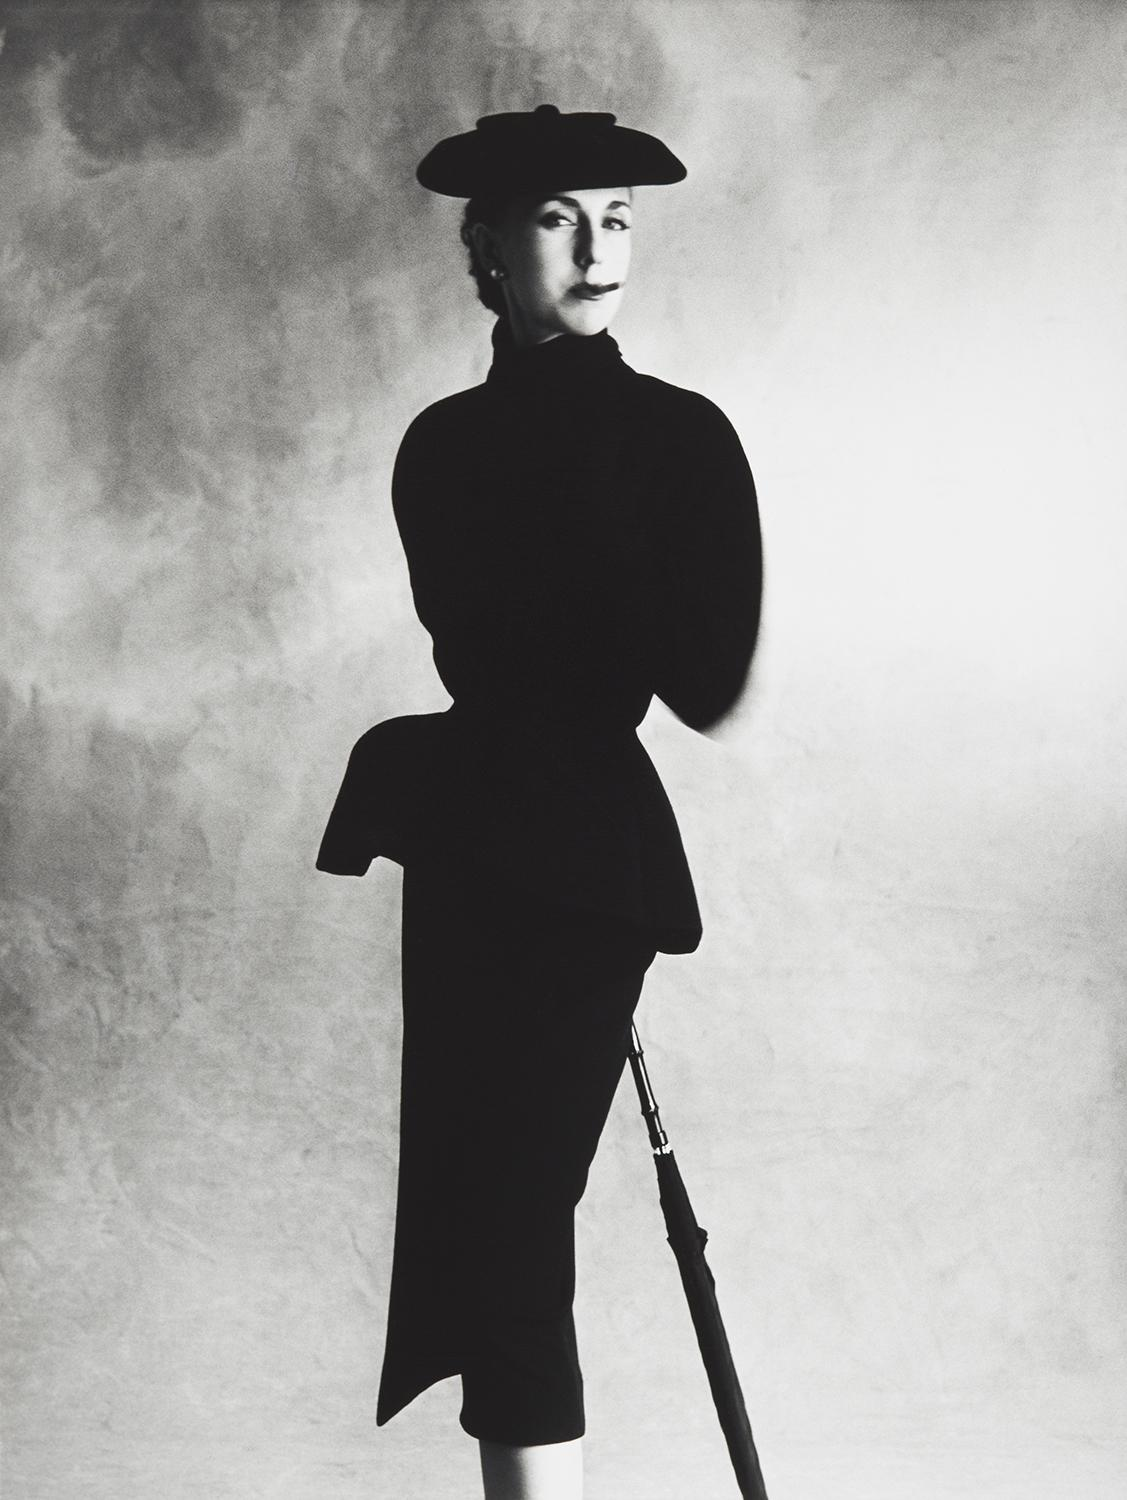 A woman standing in a black suit with a black hat.